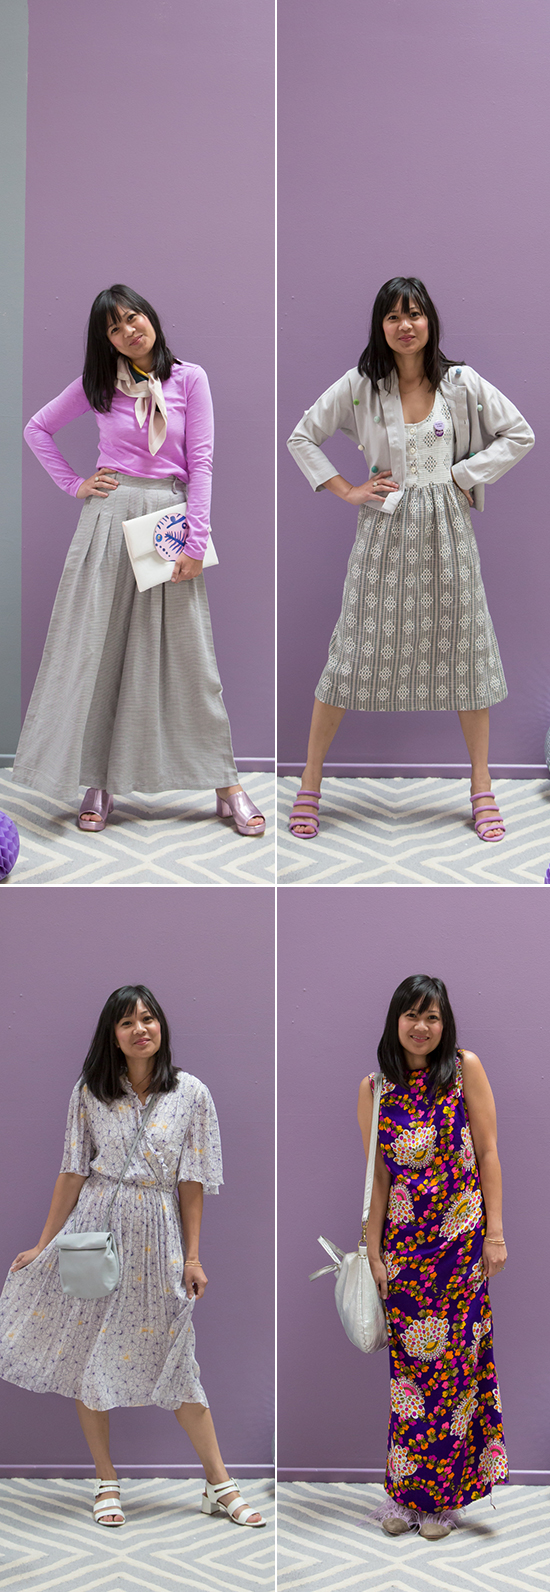 2017_09_26_Purple-Gray-Outfits-16-grid-bloh